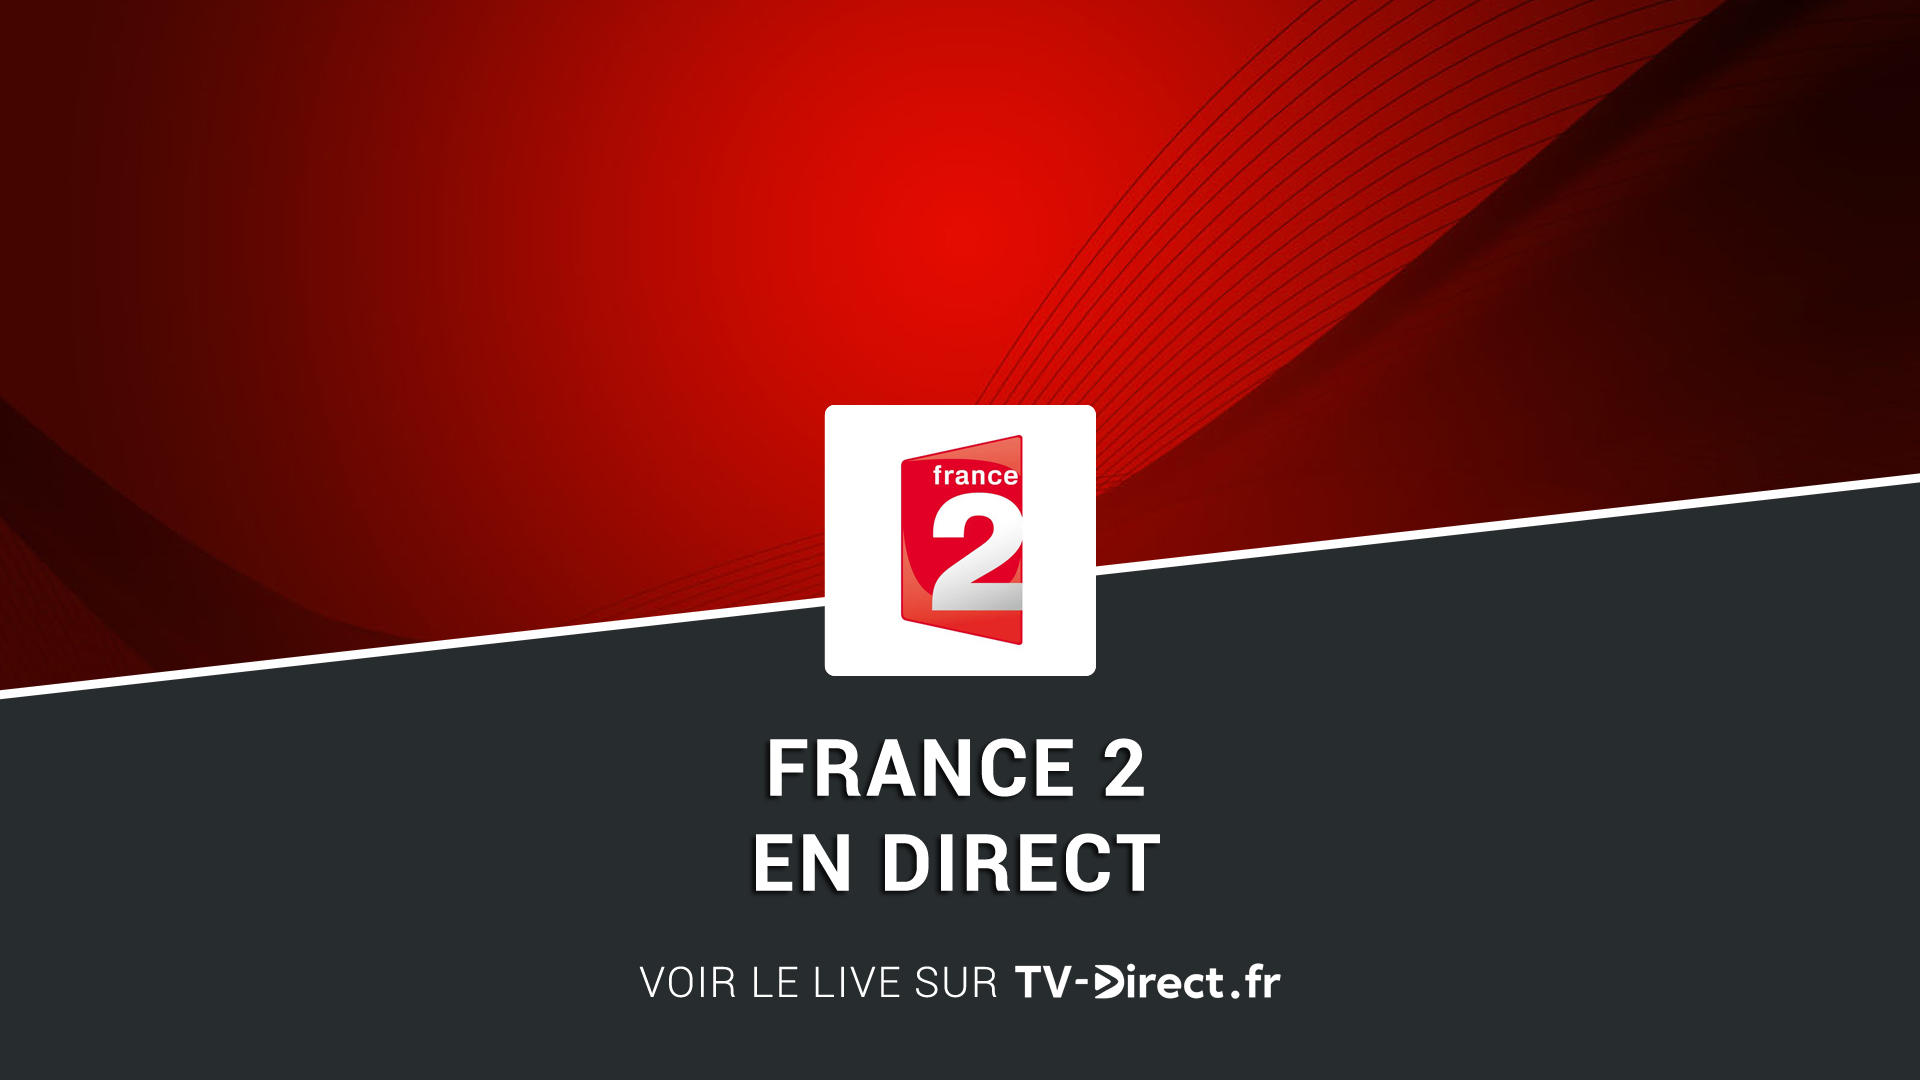 france 2 direct regarder france 2 en direct live sur internet. Black Bedroom Furniture Sets. Home Design Ideas